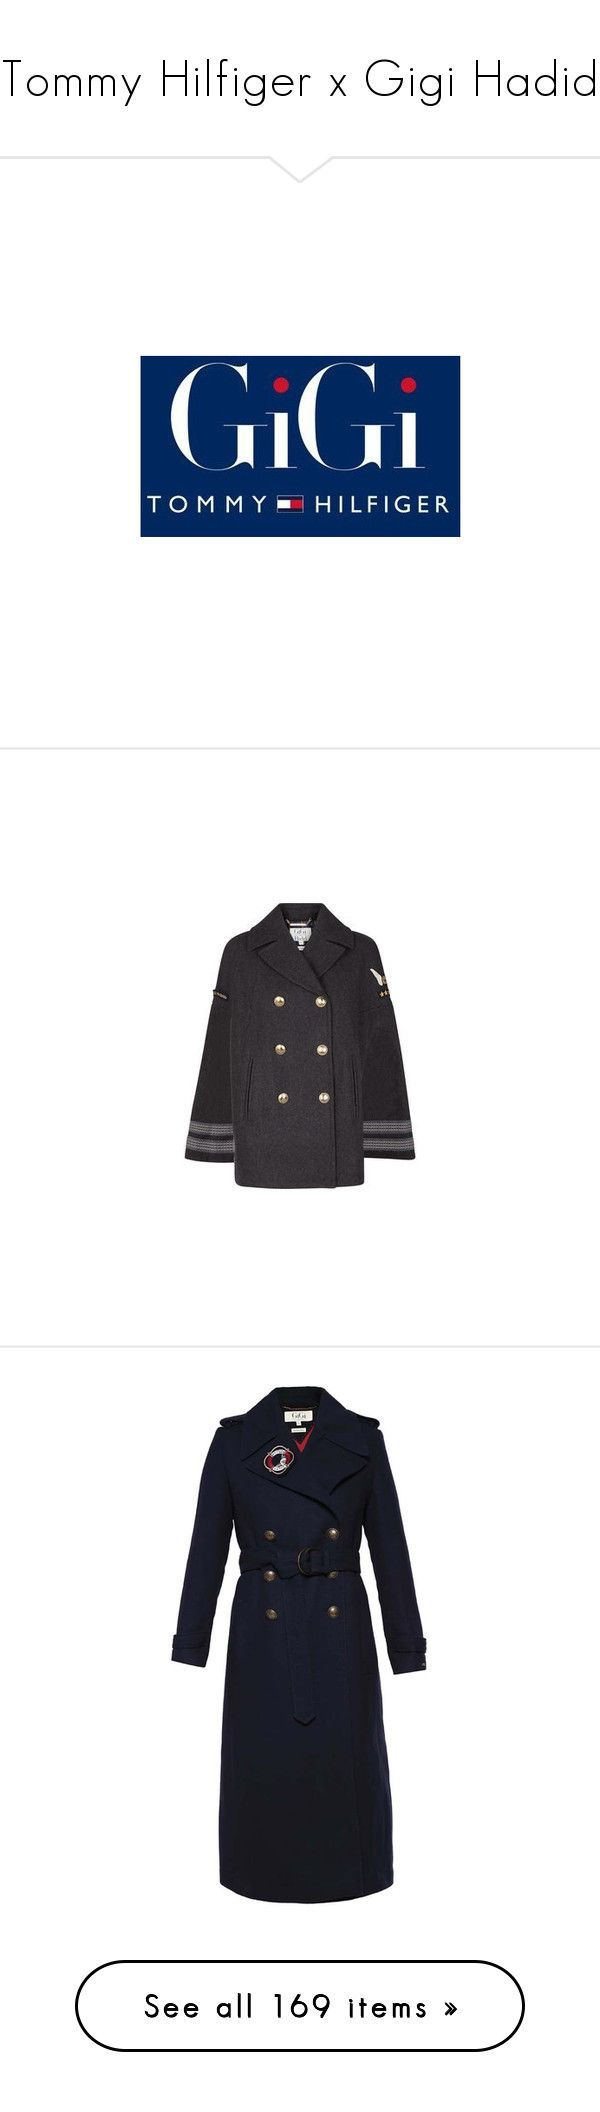 """""""Tommy Hilfiger x Gigi Hadid"""" by angelbrubisc ❤ liked on Polyvore featuring logos, backgrounds, sfondi, outerwear, coats, jackets, double breasted cape, military cape coat, military style coat and double breasted coat"""